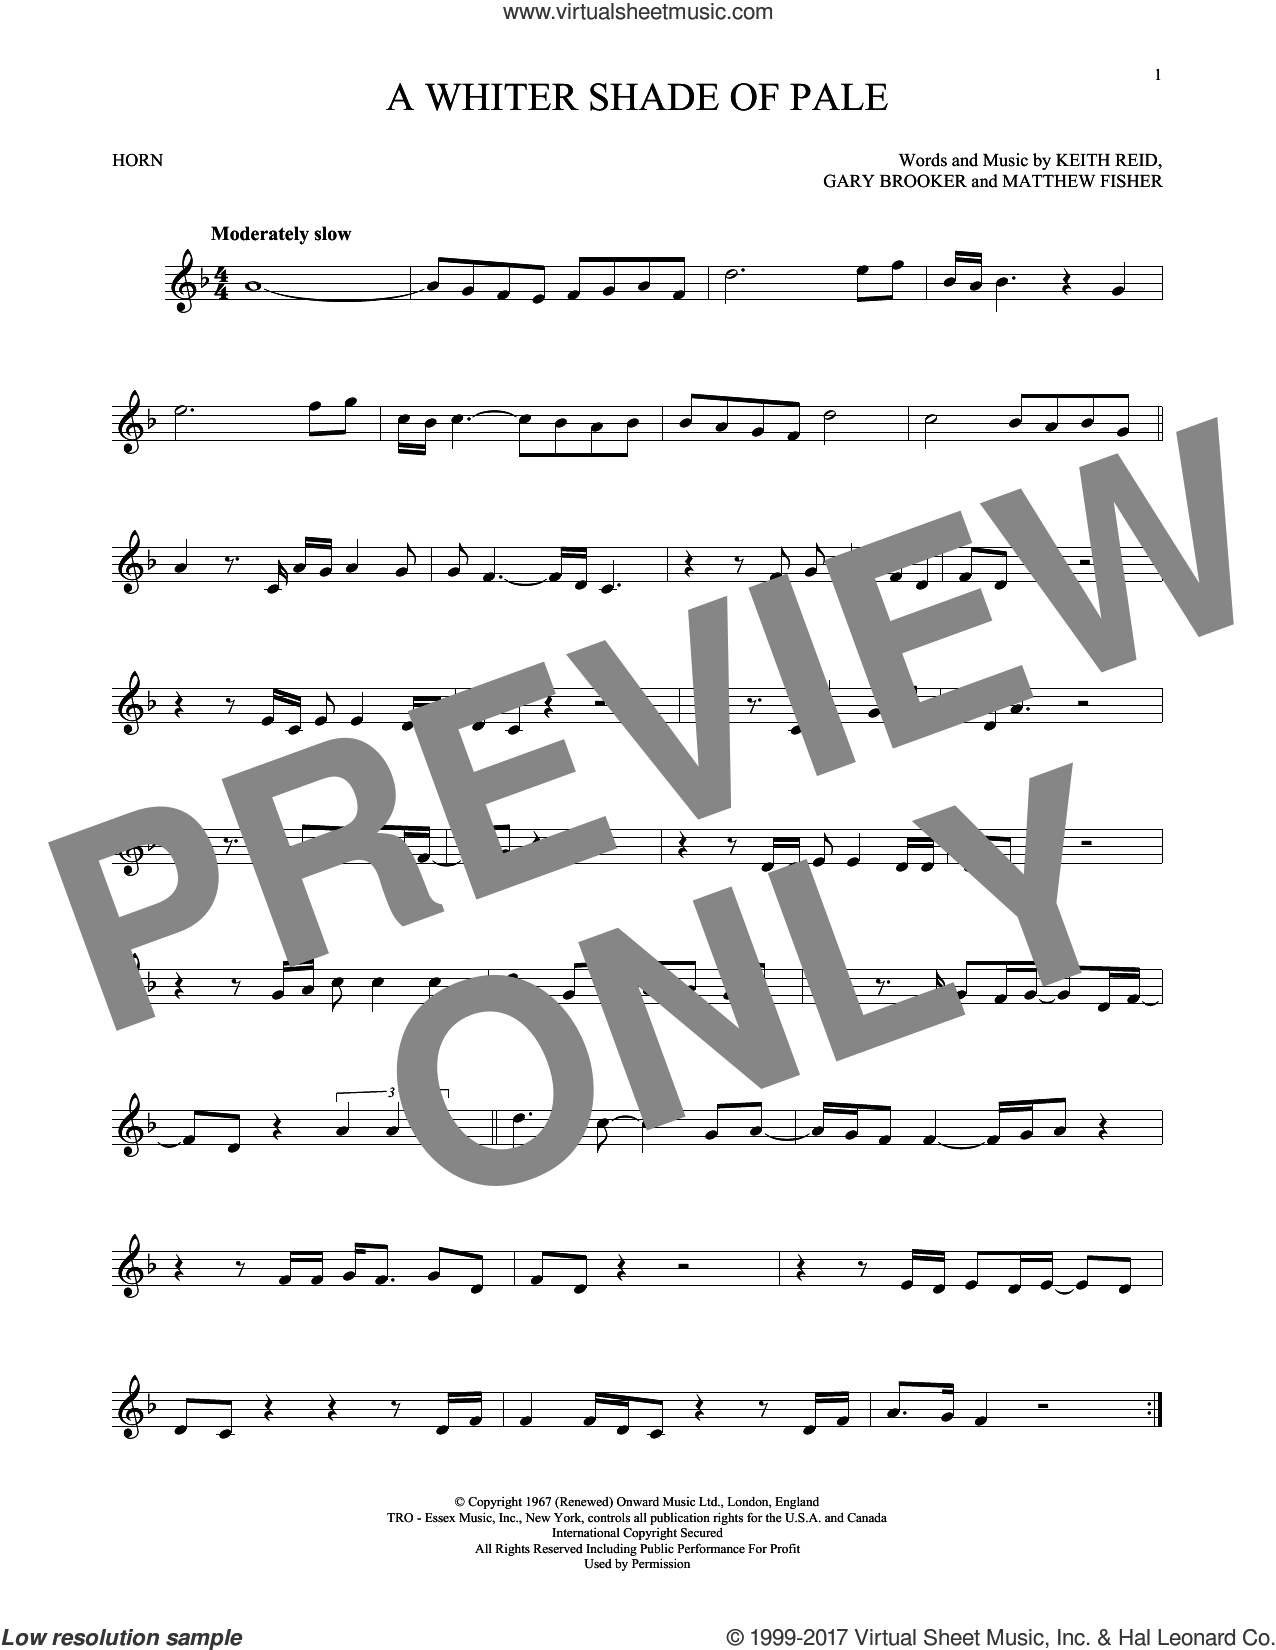 A Whiter Shade Of Pale sheet music for horn solo by Procol Harum, Gary Brooker, Keith Reid and Matthew Fisher, intermediate